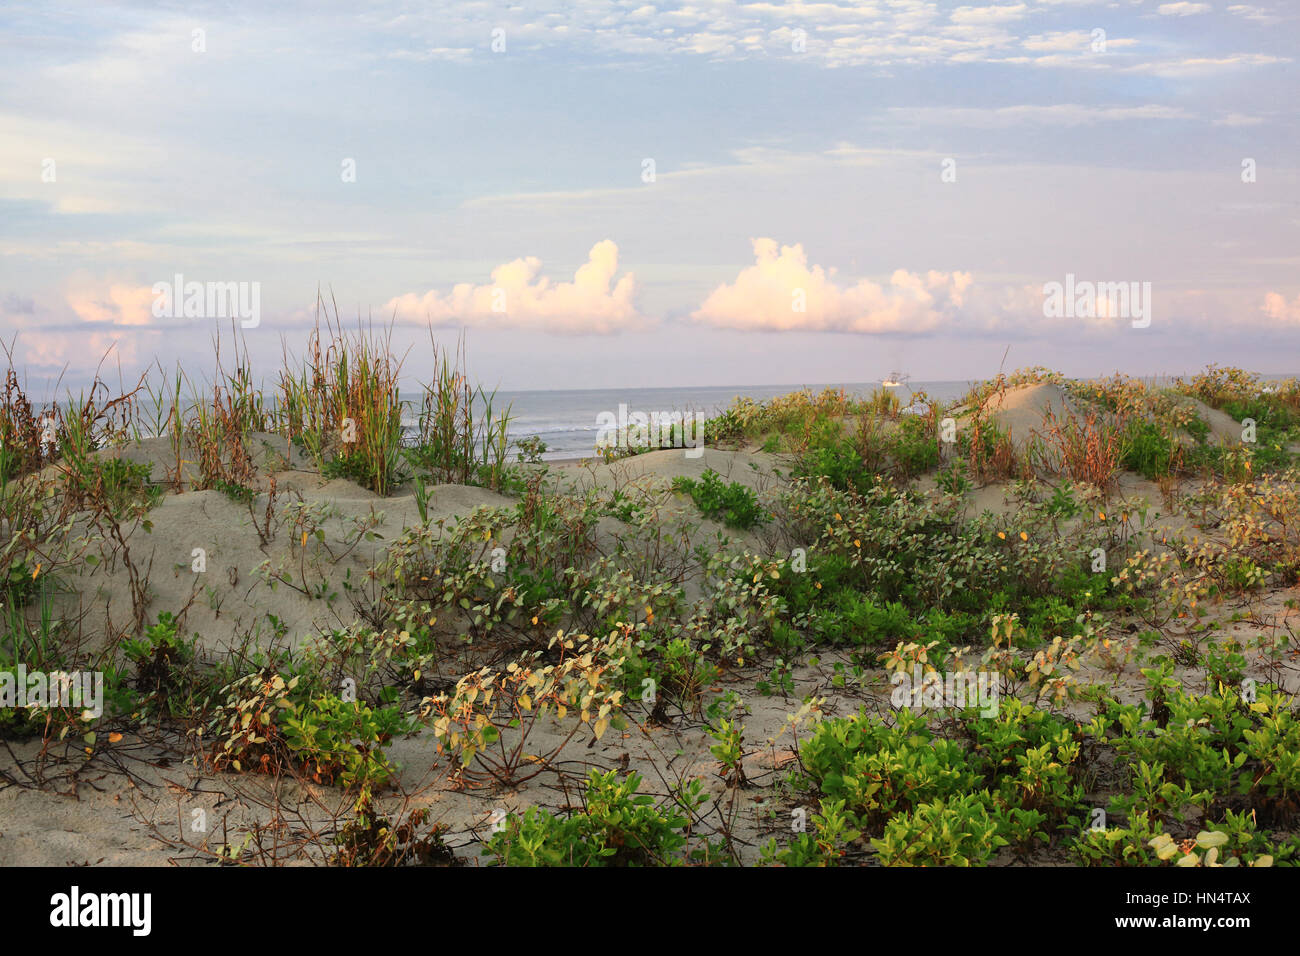 Sunrise at the dunes of the beach at Kiawah Island, South Carolina. - Stock Image